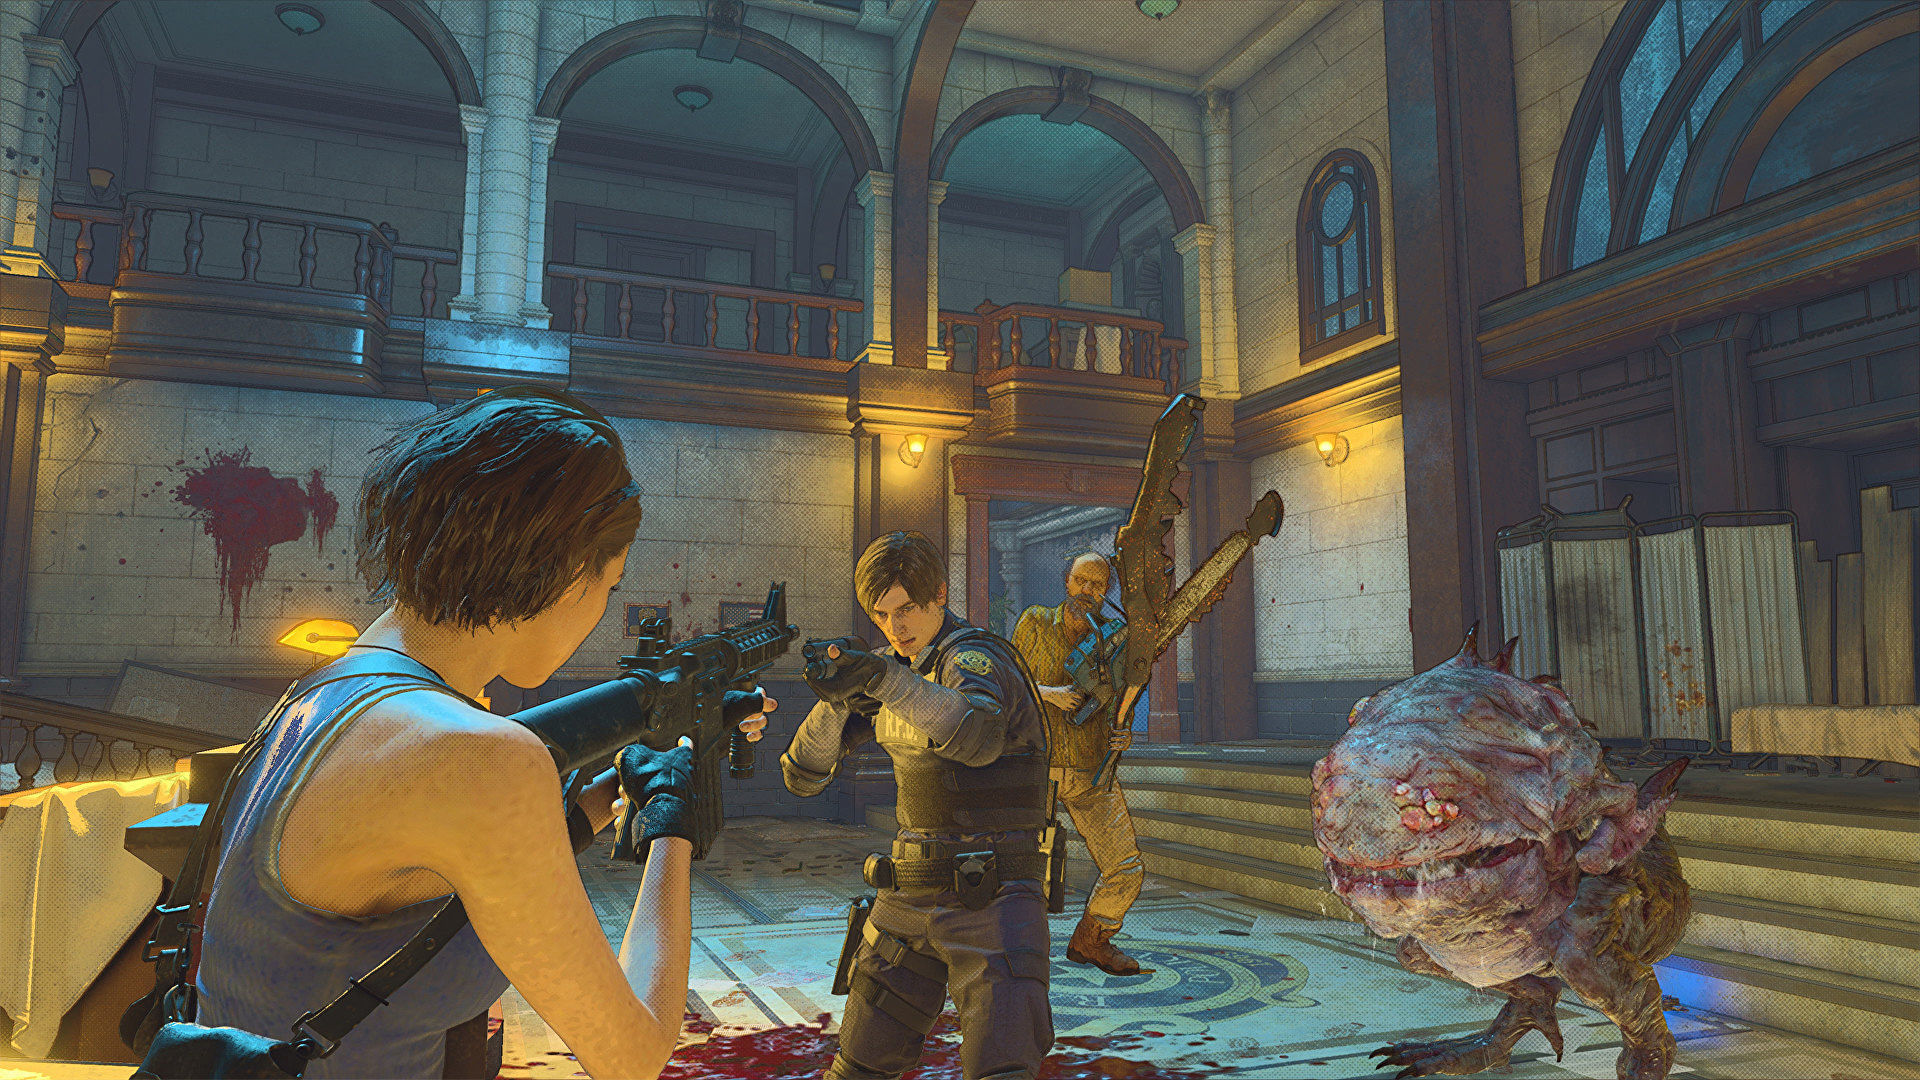 Resident Evil Village's multiplayer open beta starts overnight, and you can preload now